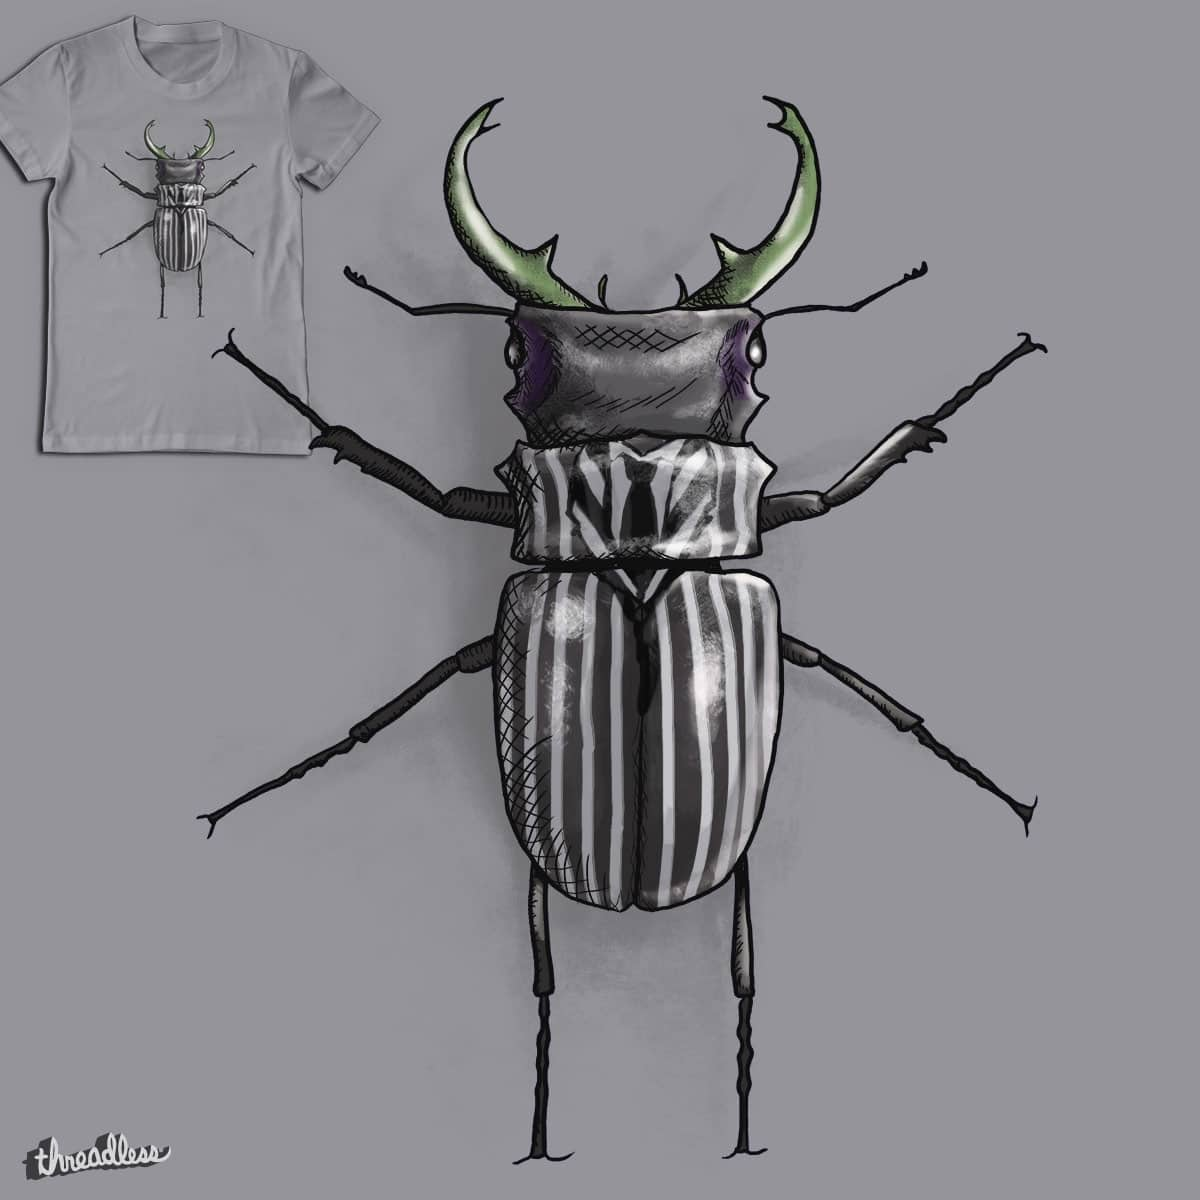 Betelgeuse by Pyne on Threadless